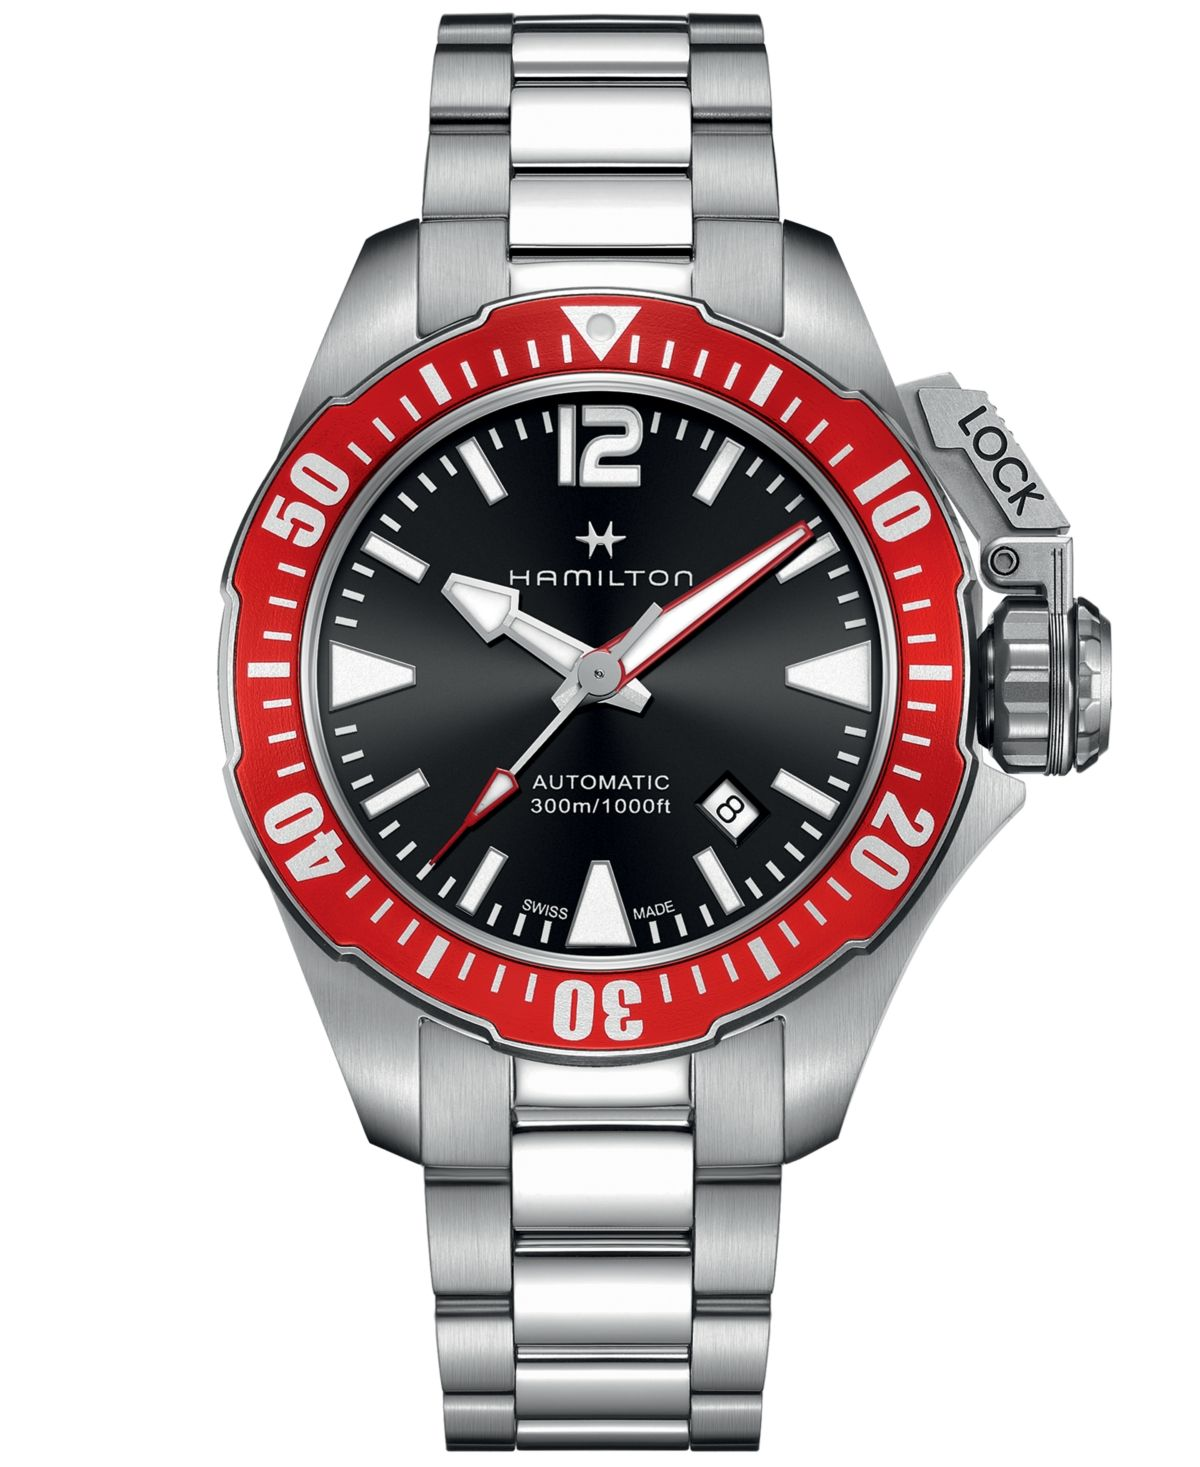 Hamilton Men's Swiss Automatic Khaki Frogman Stainless Steel Bracelet Watch 42mm #stainlesssteelrolex